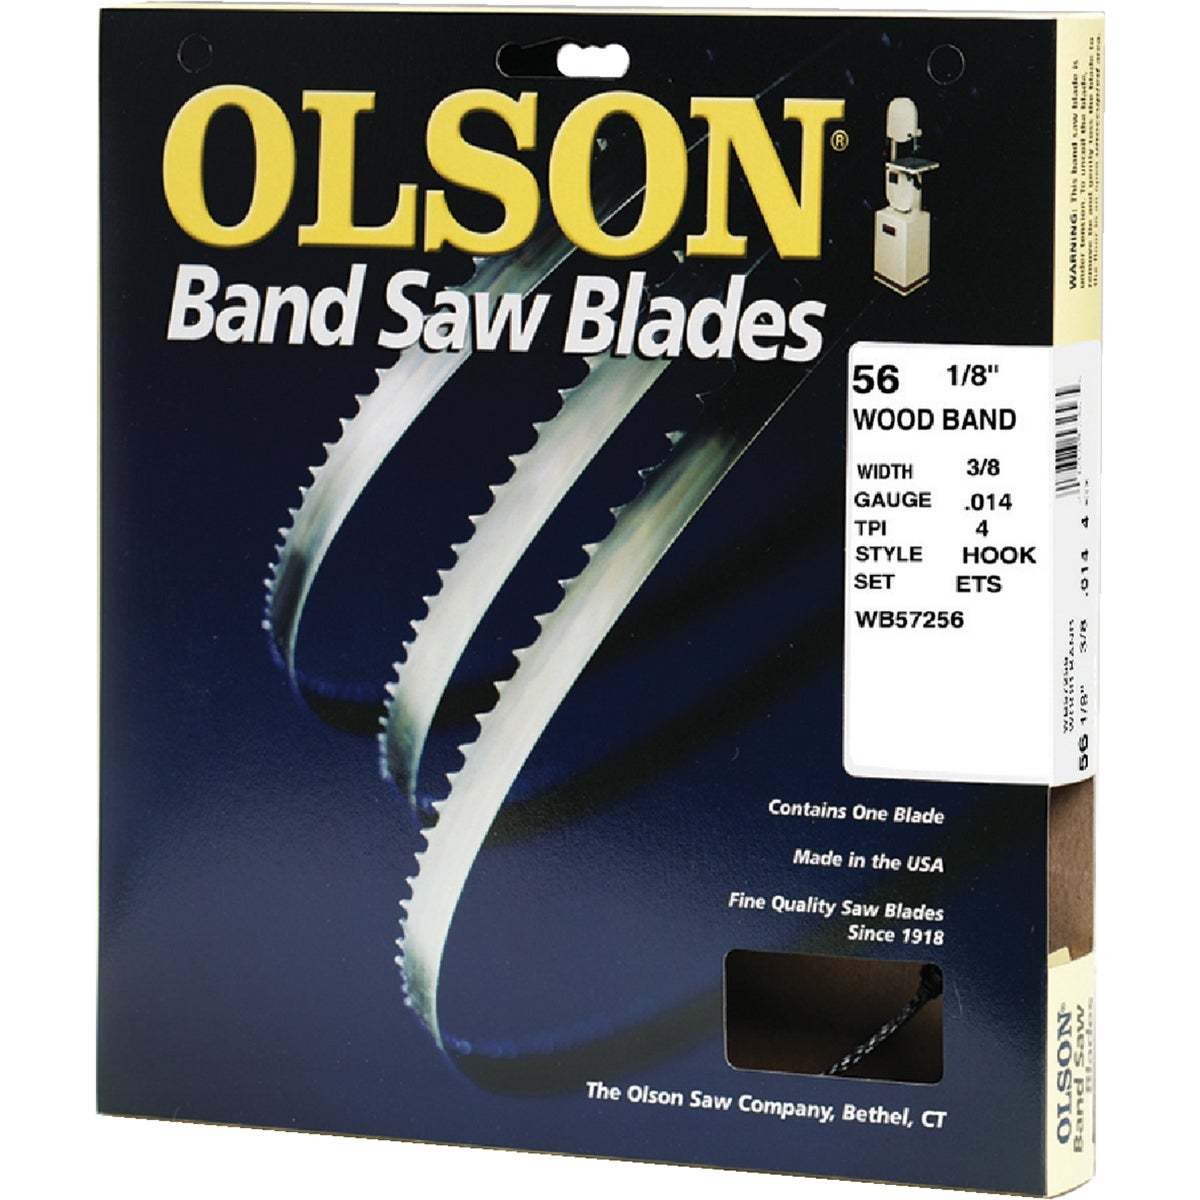 "56-1/8"" BANDSAW BLADE - 57256 by Olson Saw Co"